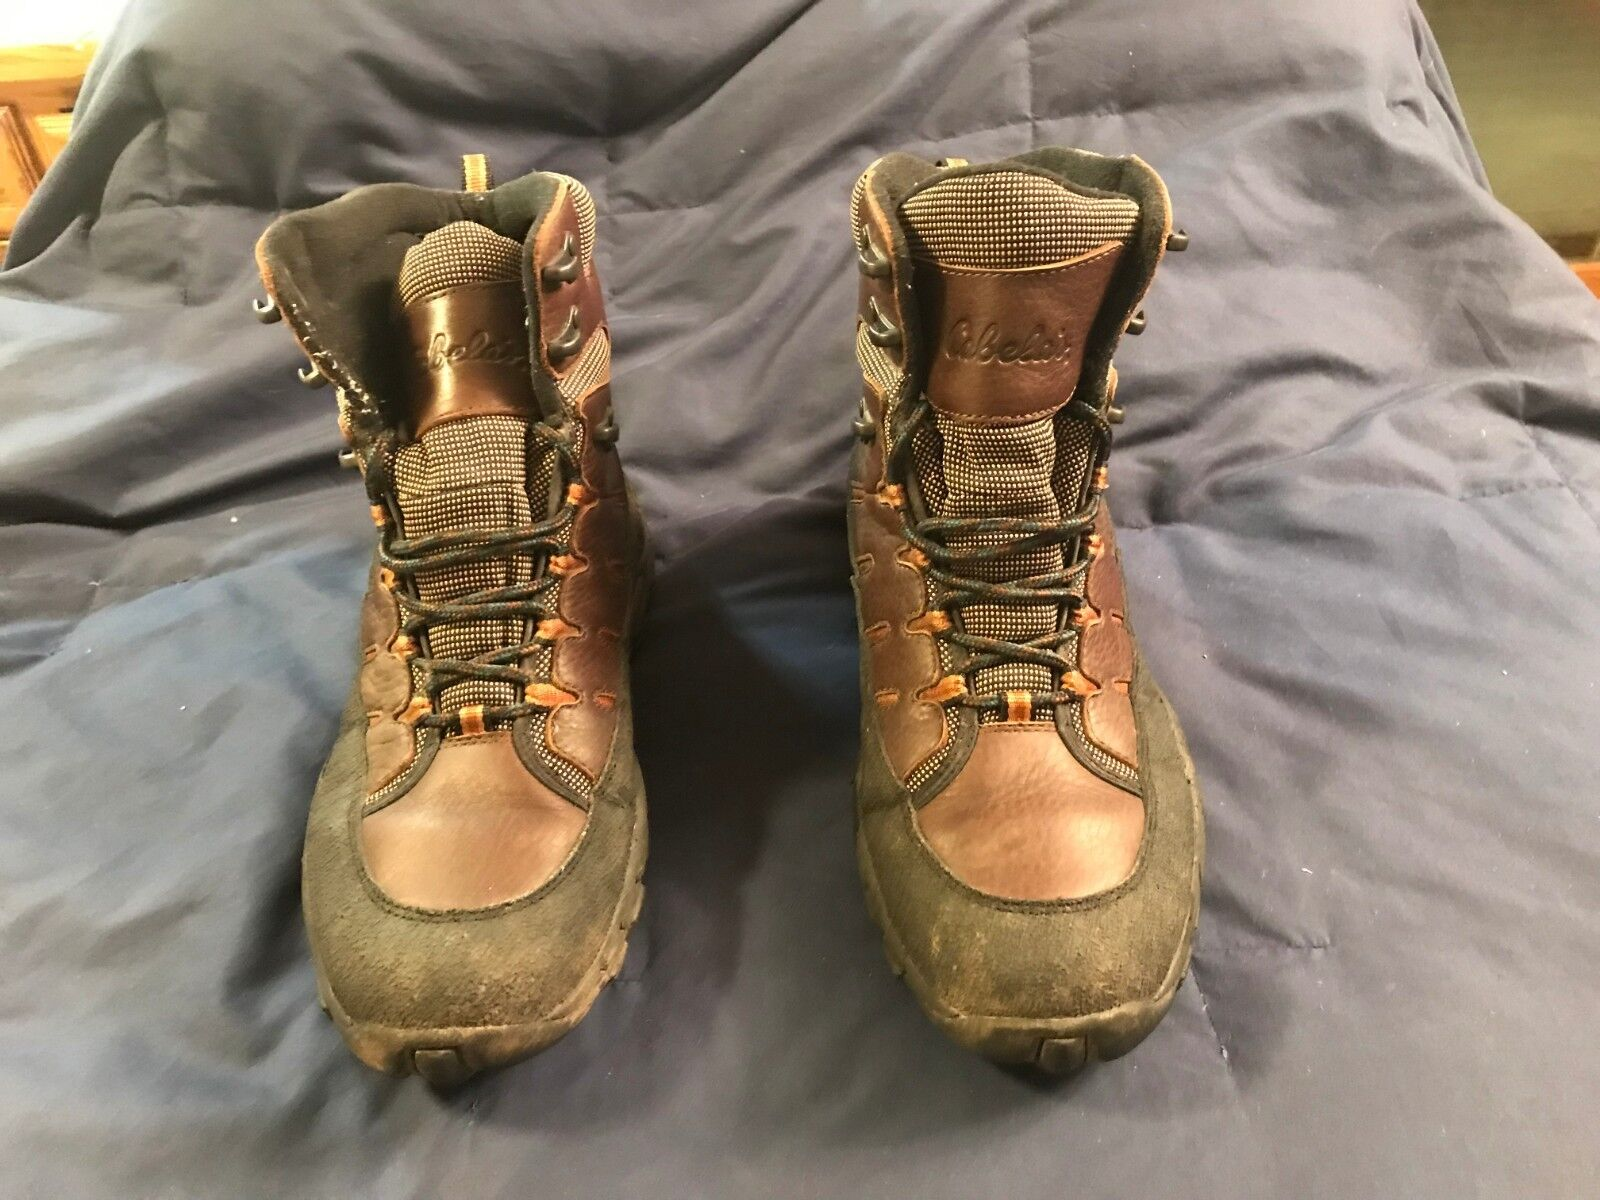 Cabelas Thinsulate Insulated  Dry-Plus Leather and Rubber 9  Boots  big discount